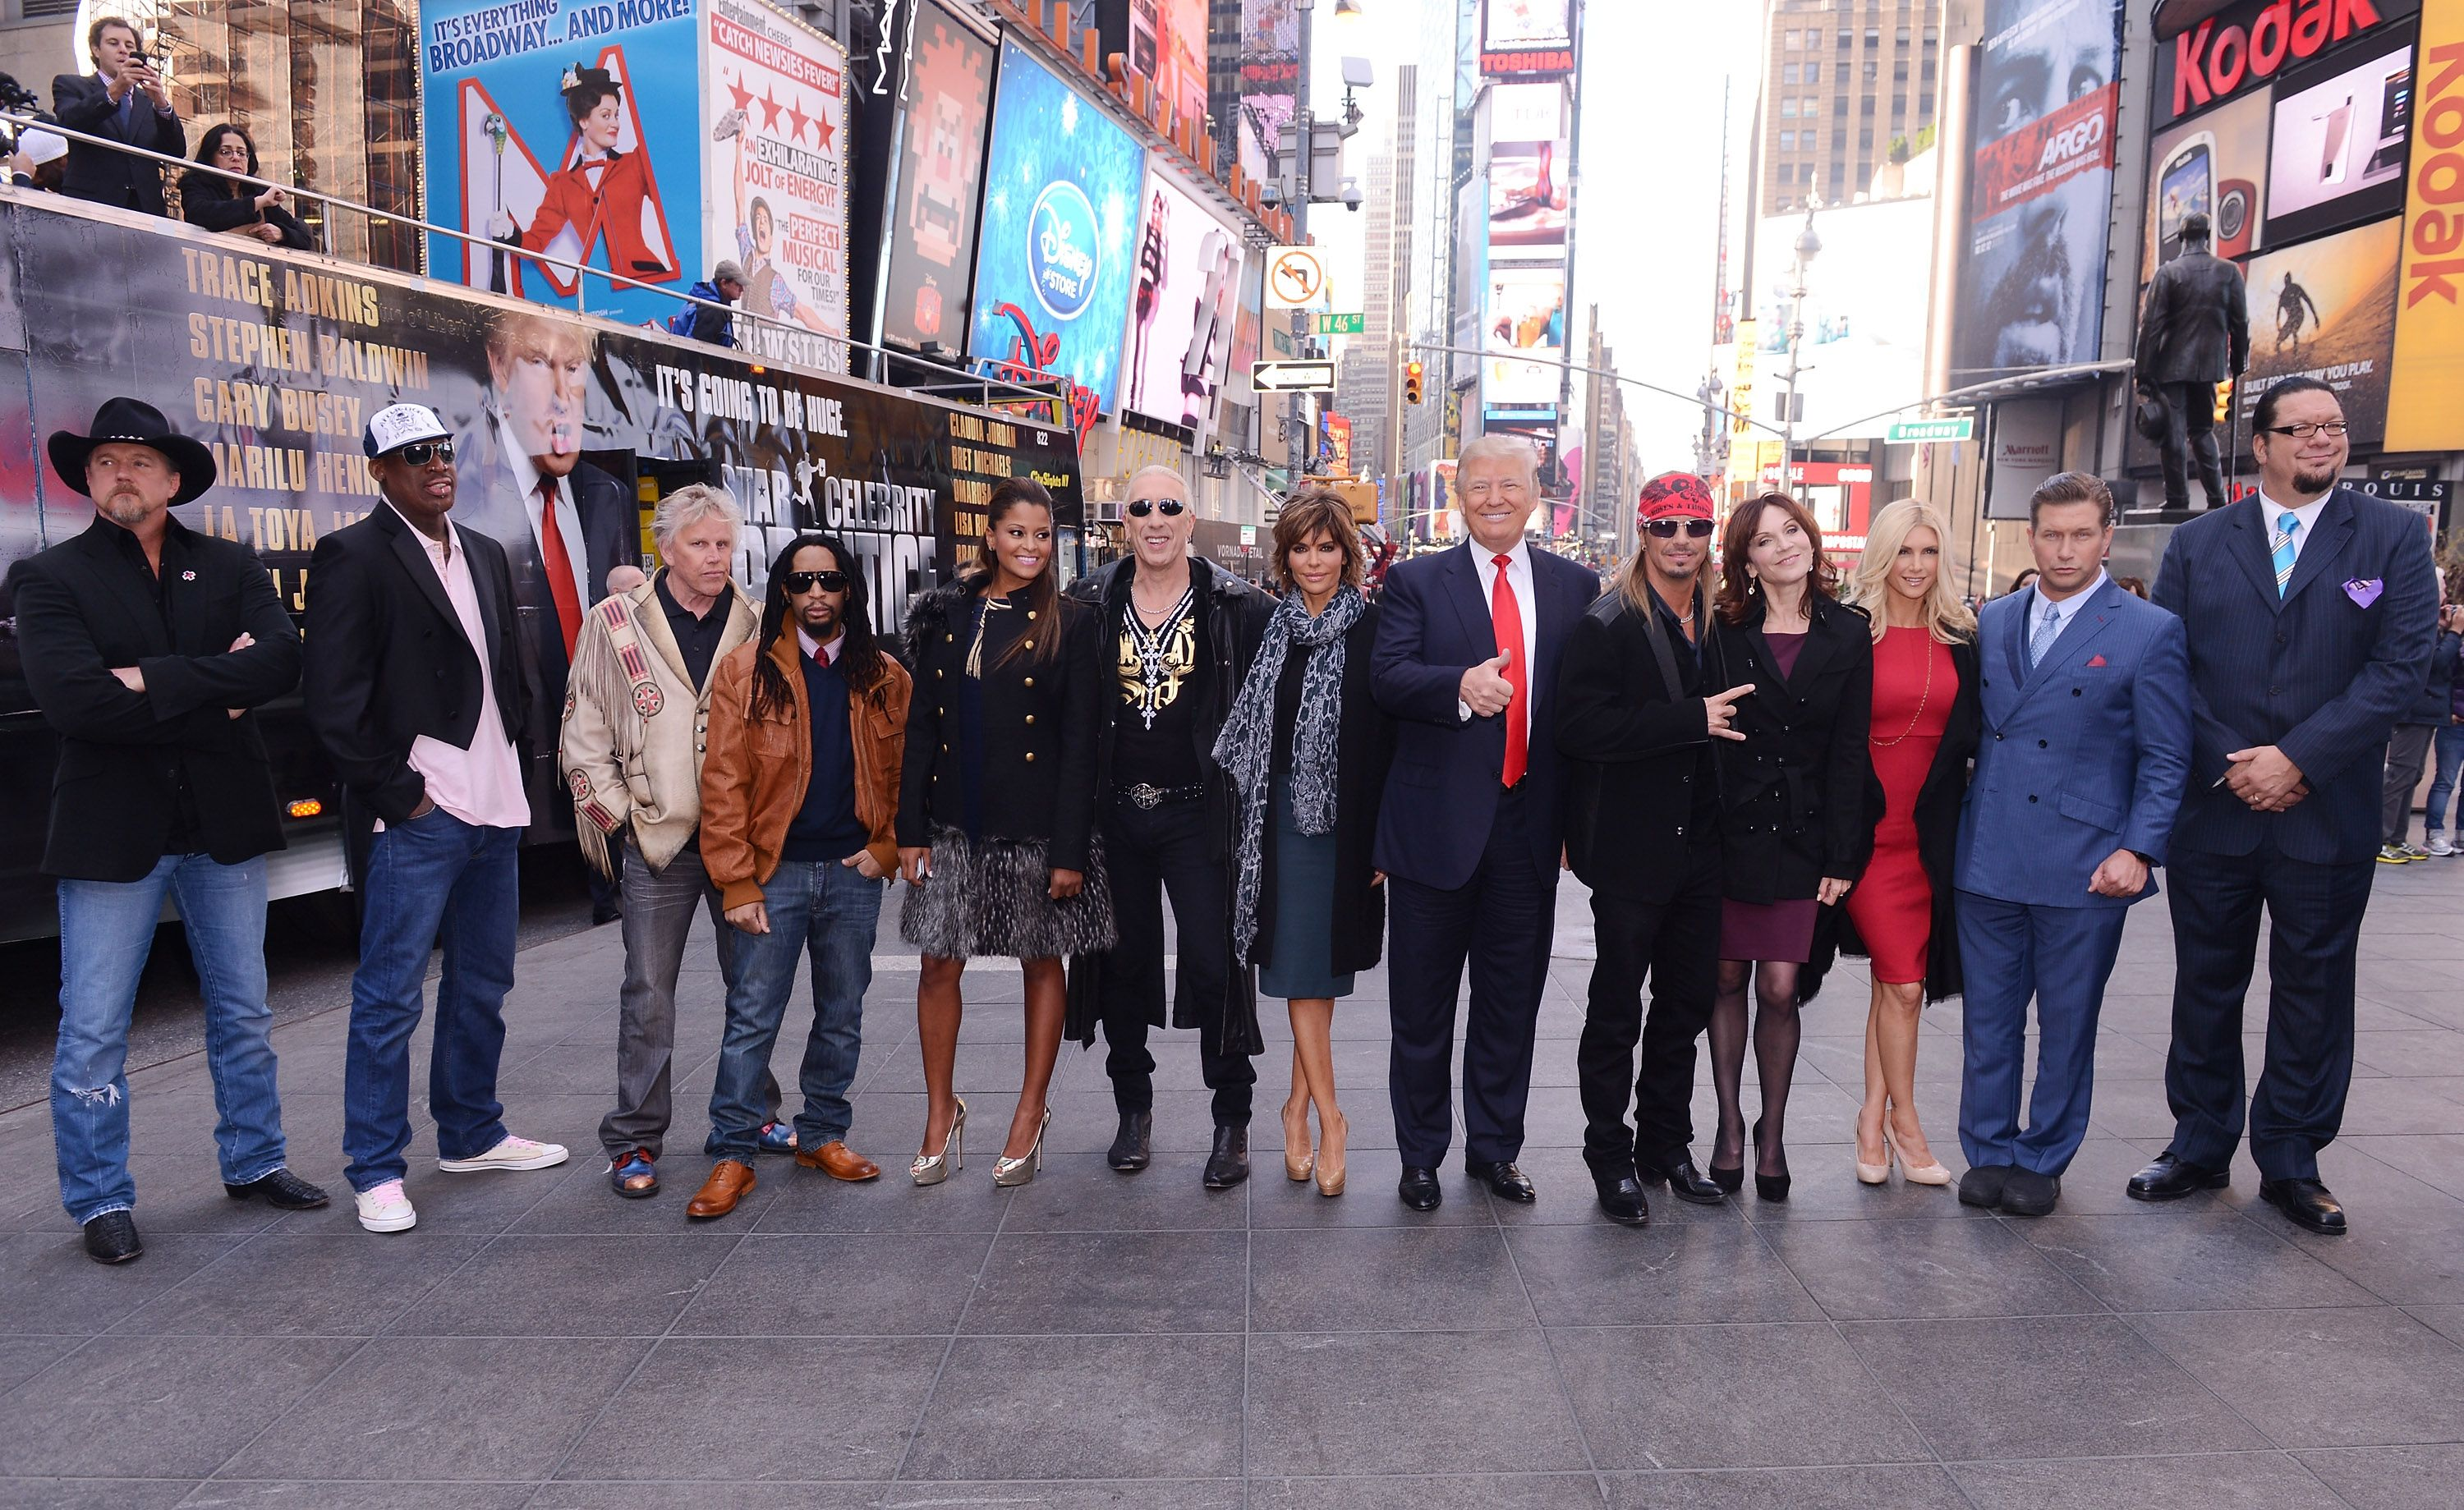 Celebrity Apprentice 4 cast names leak out – reality blurred